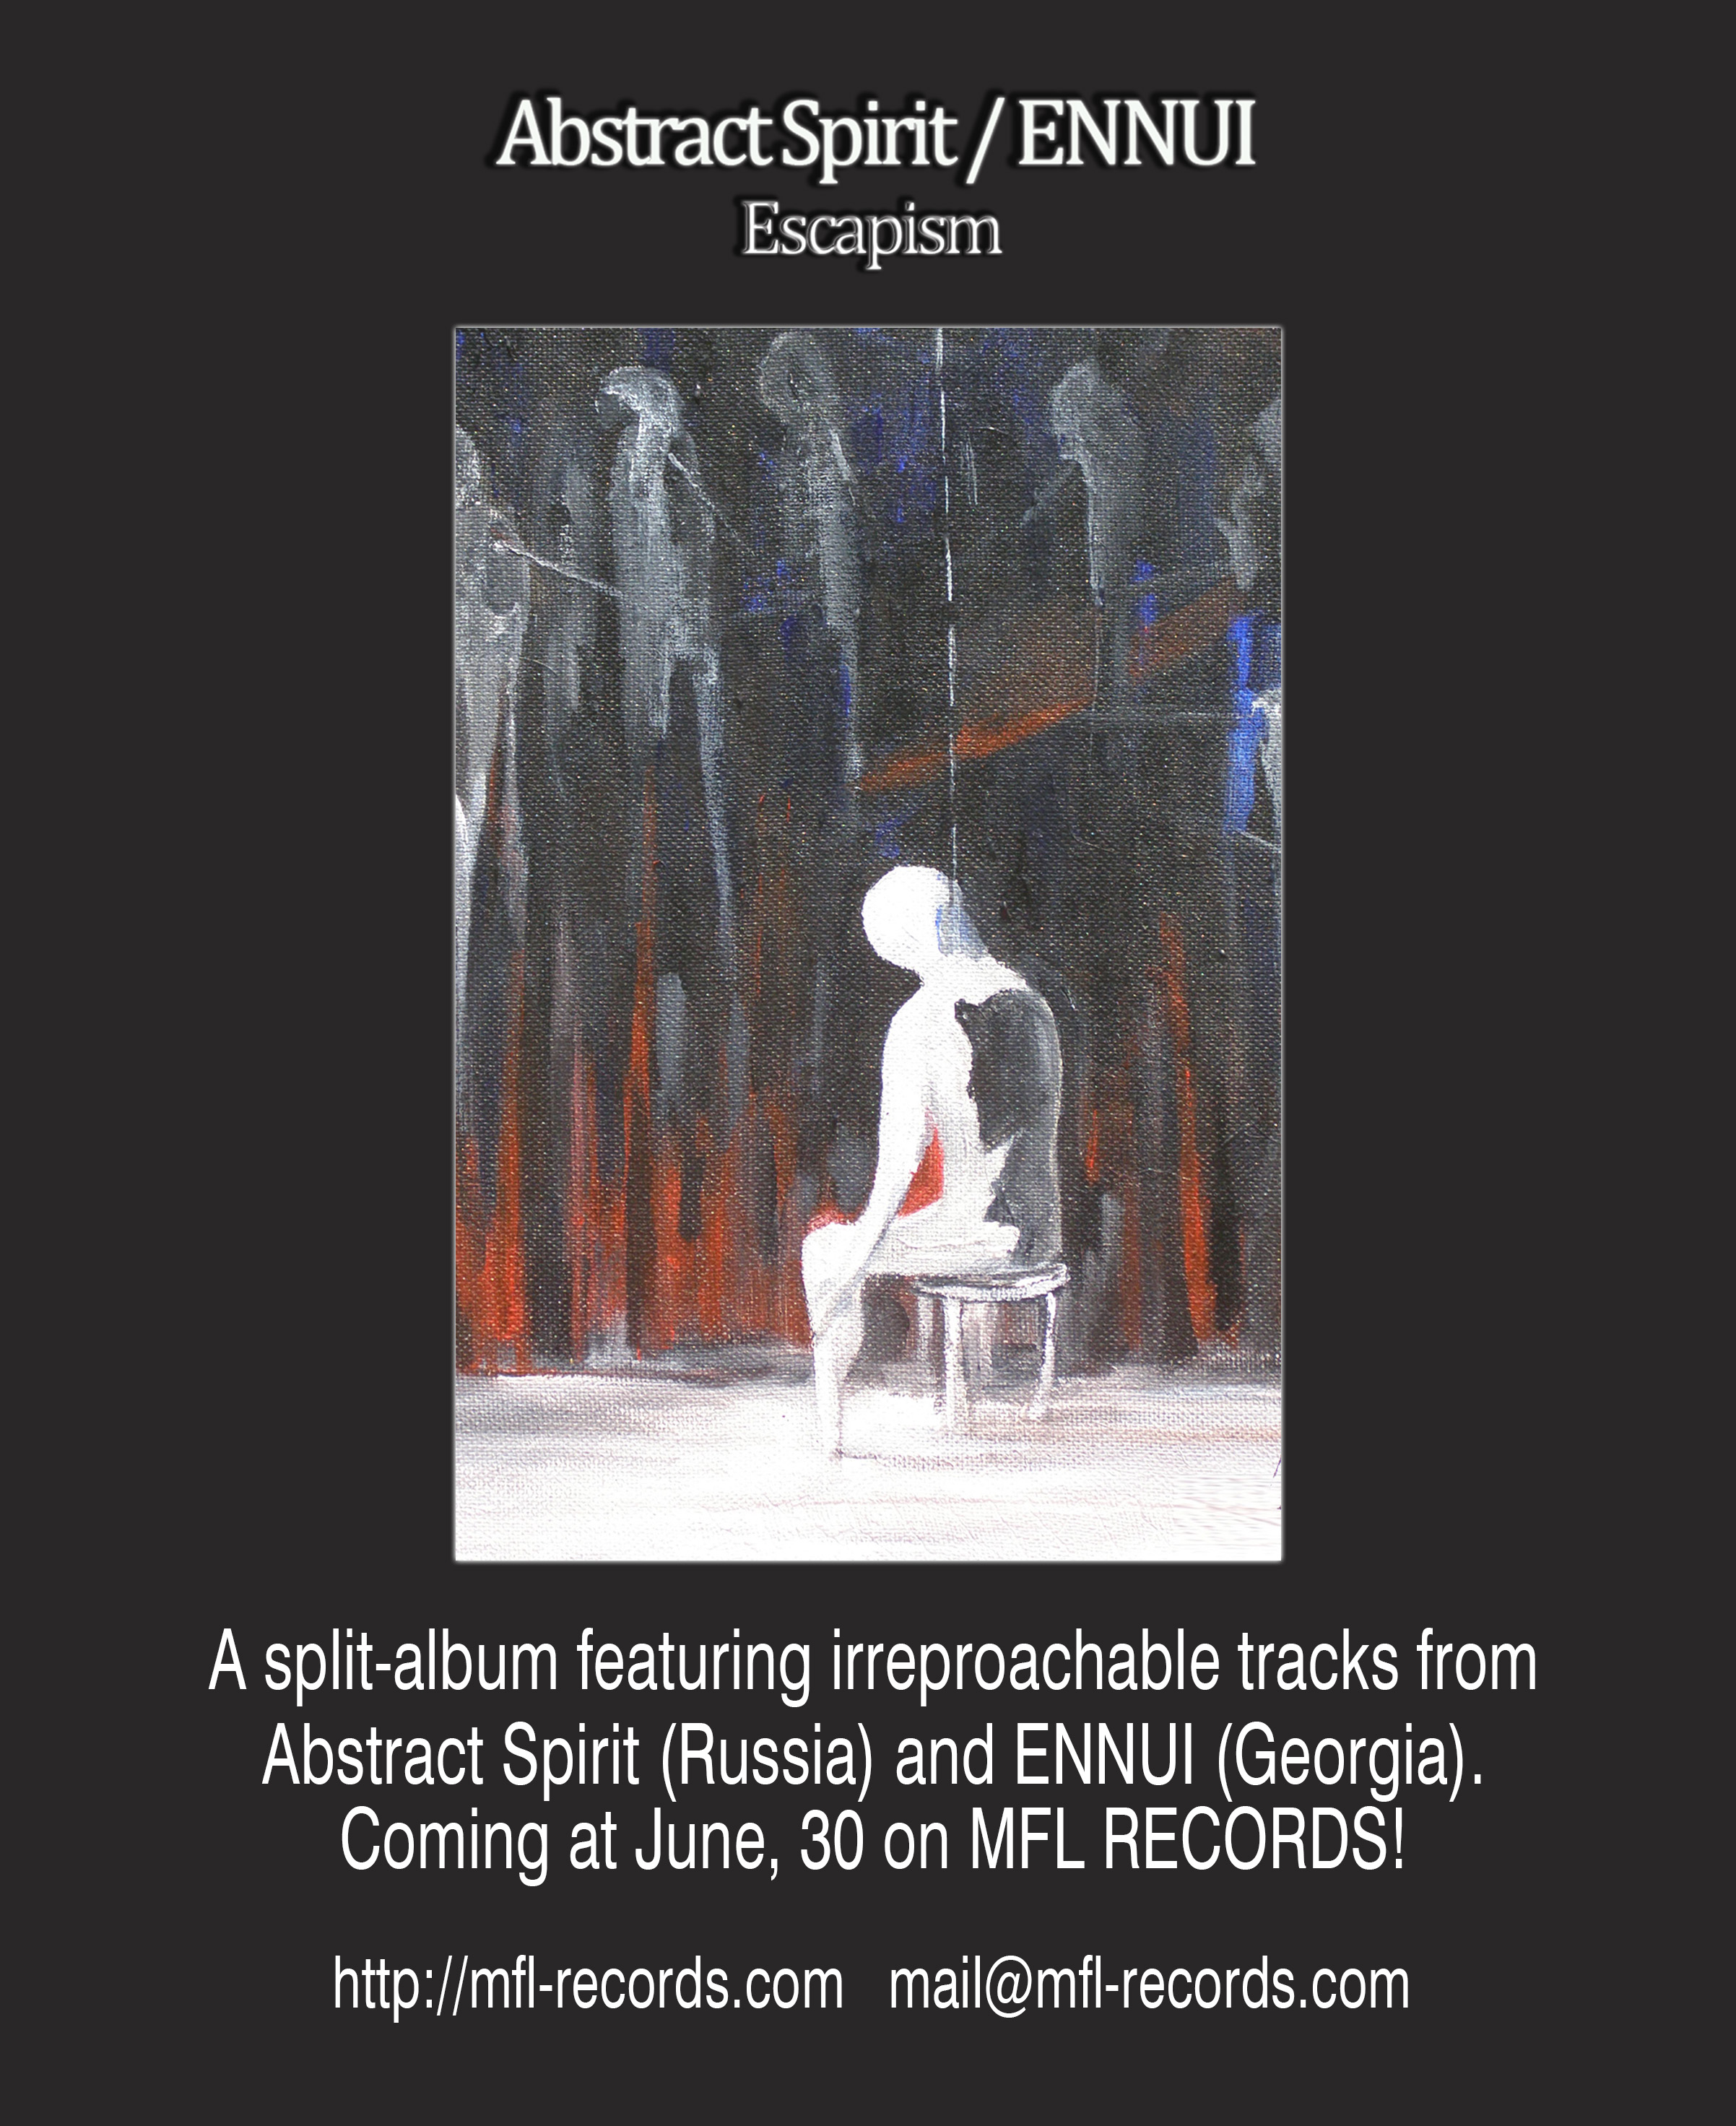 Abstract Spirit - ENNUI_upcoming split album on MFL-Records_announcement